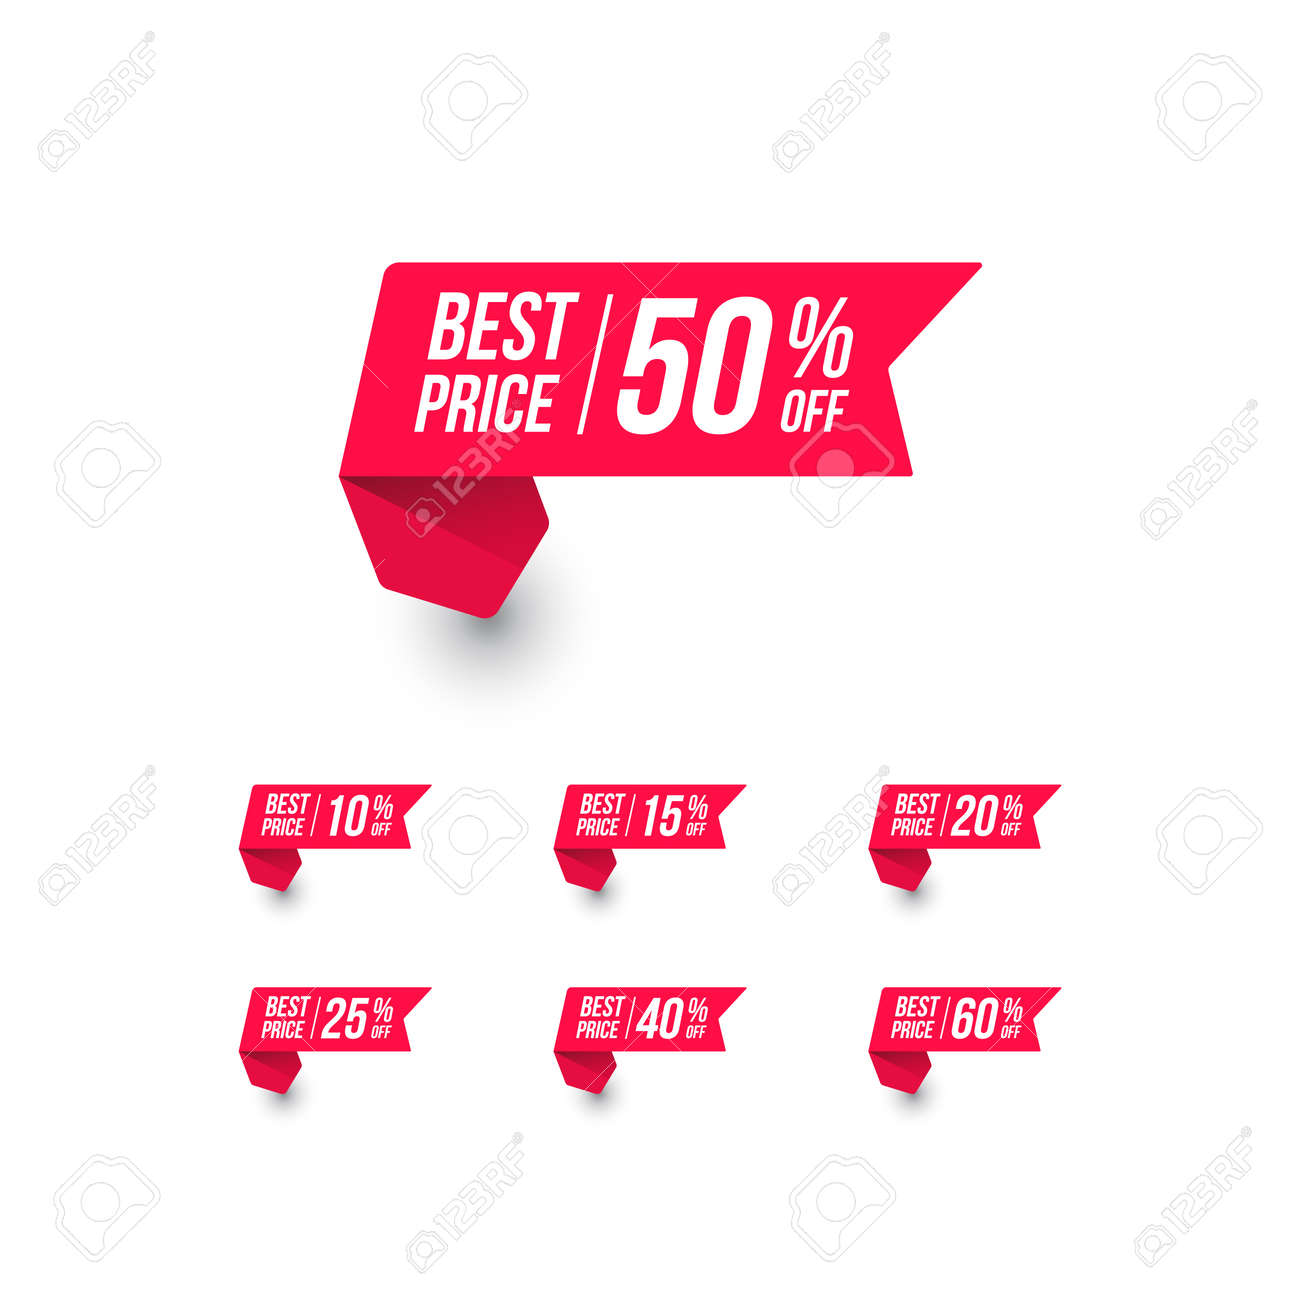 Best Price Shopping Price Tag Royalty Free Cliparts Vectors And Stock Illustration Image 90807835